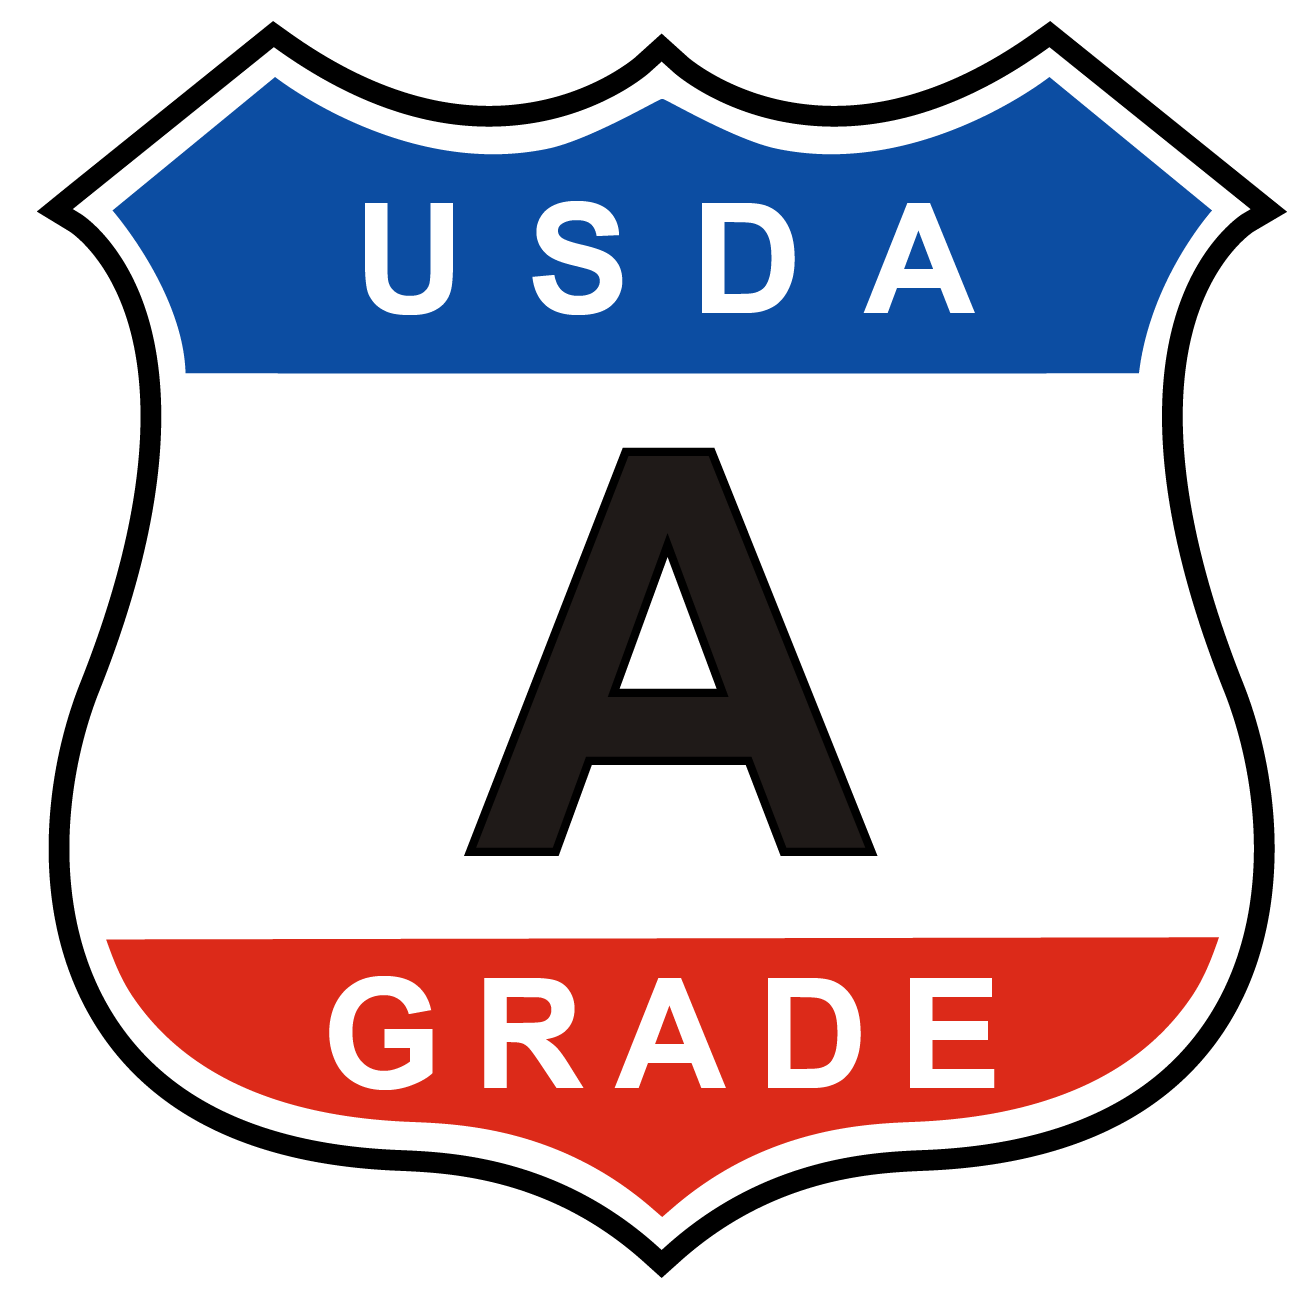 USDA Grade A Shield